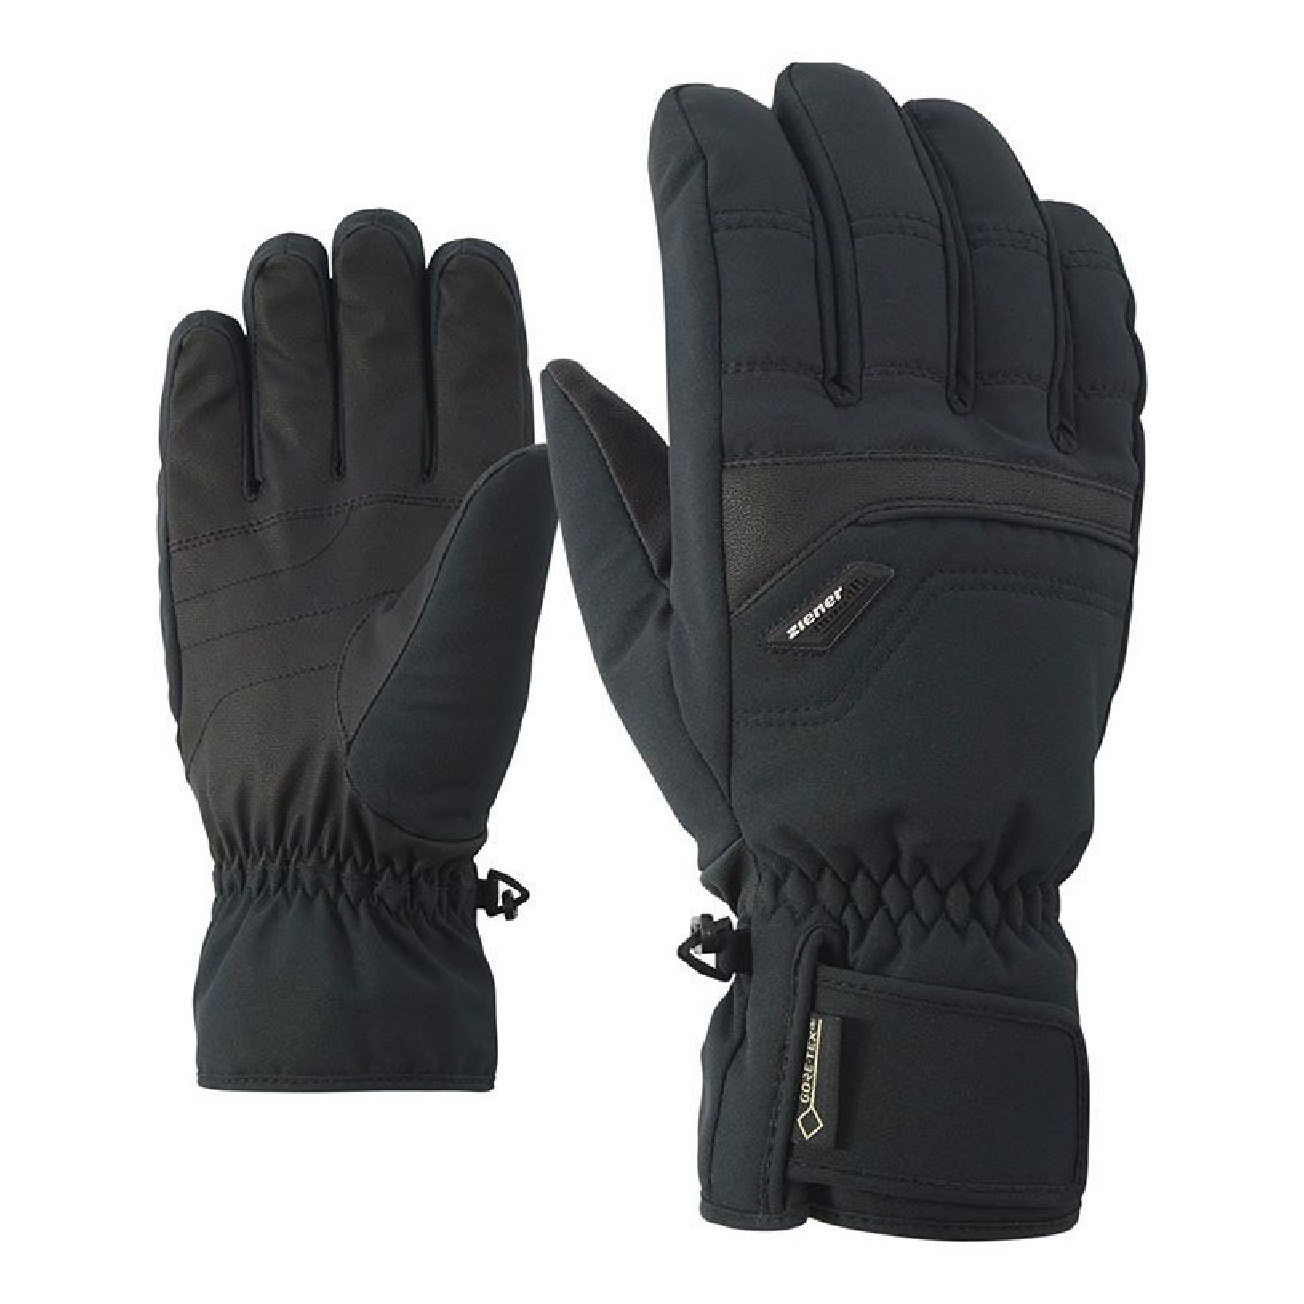 ZienerGlyn GTX Gore plus warmSkihandschuh